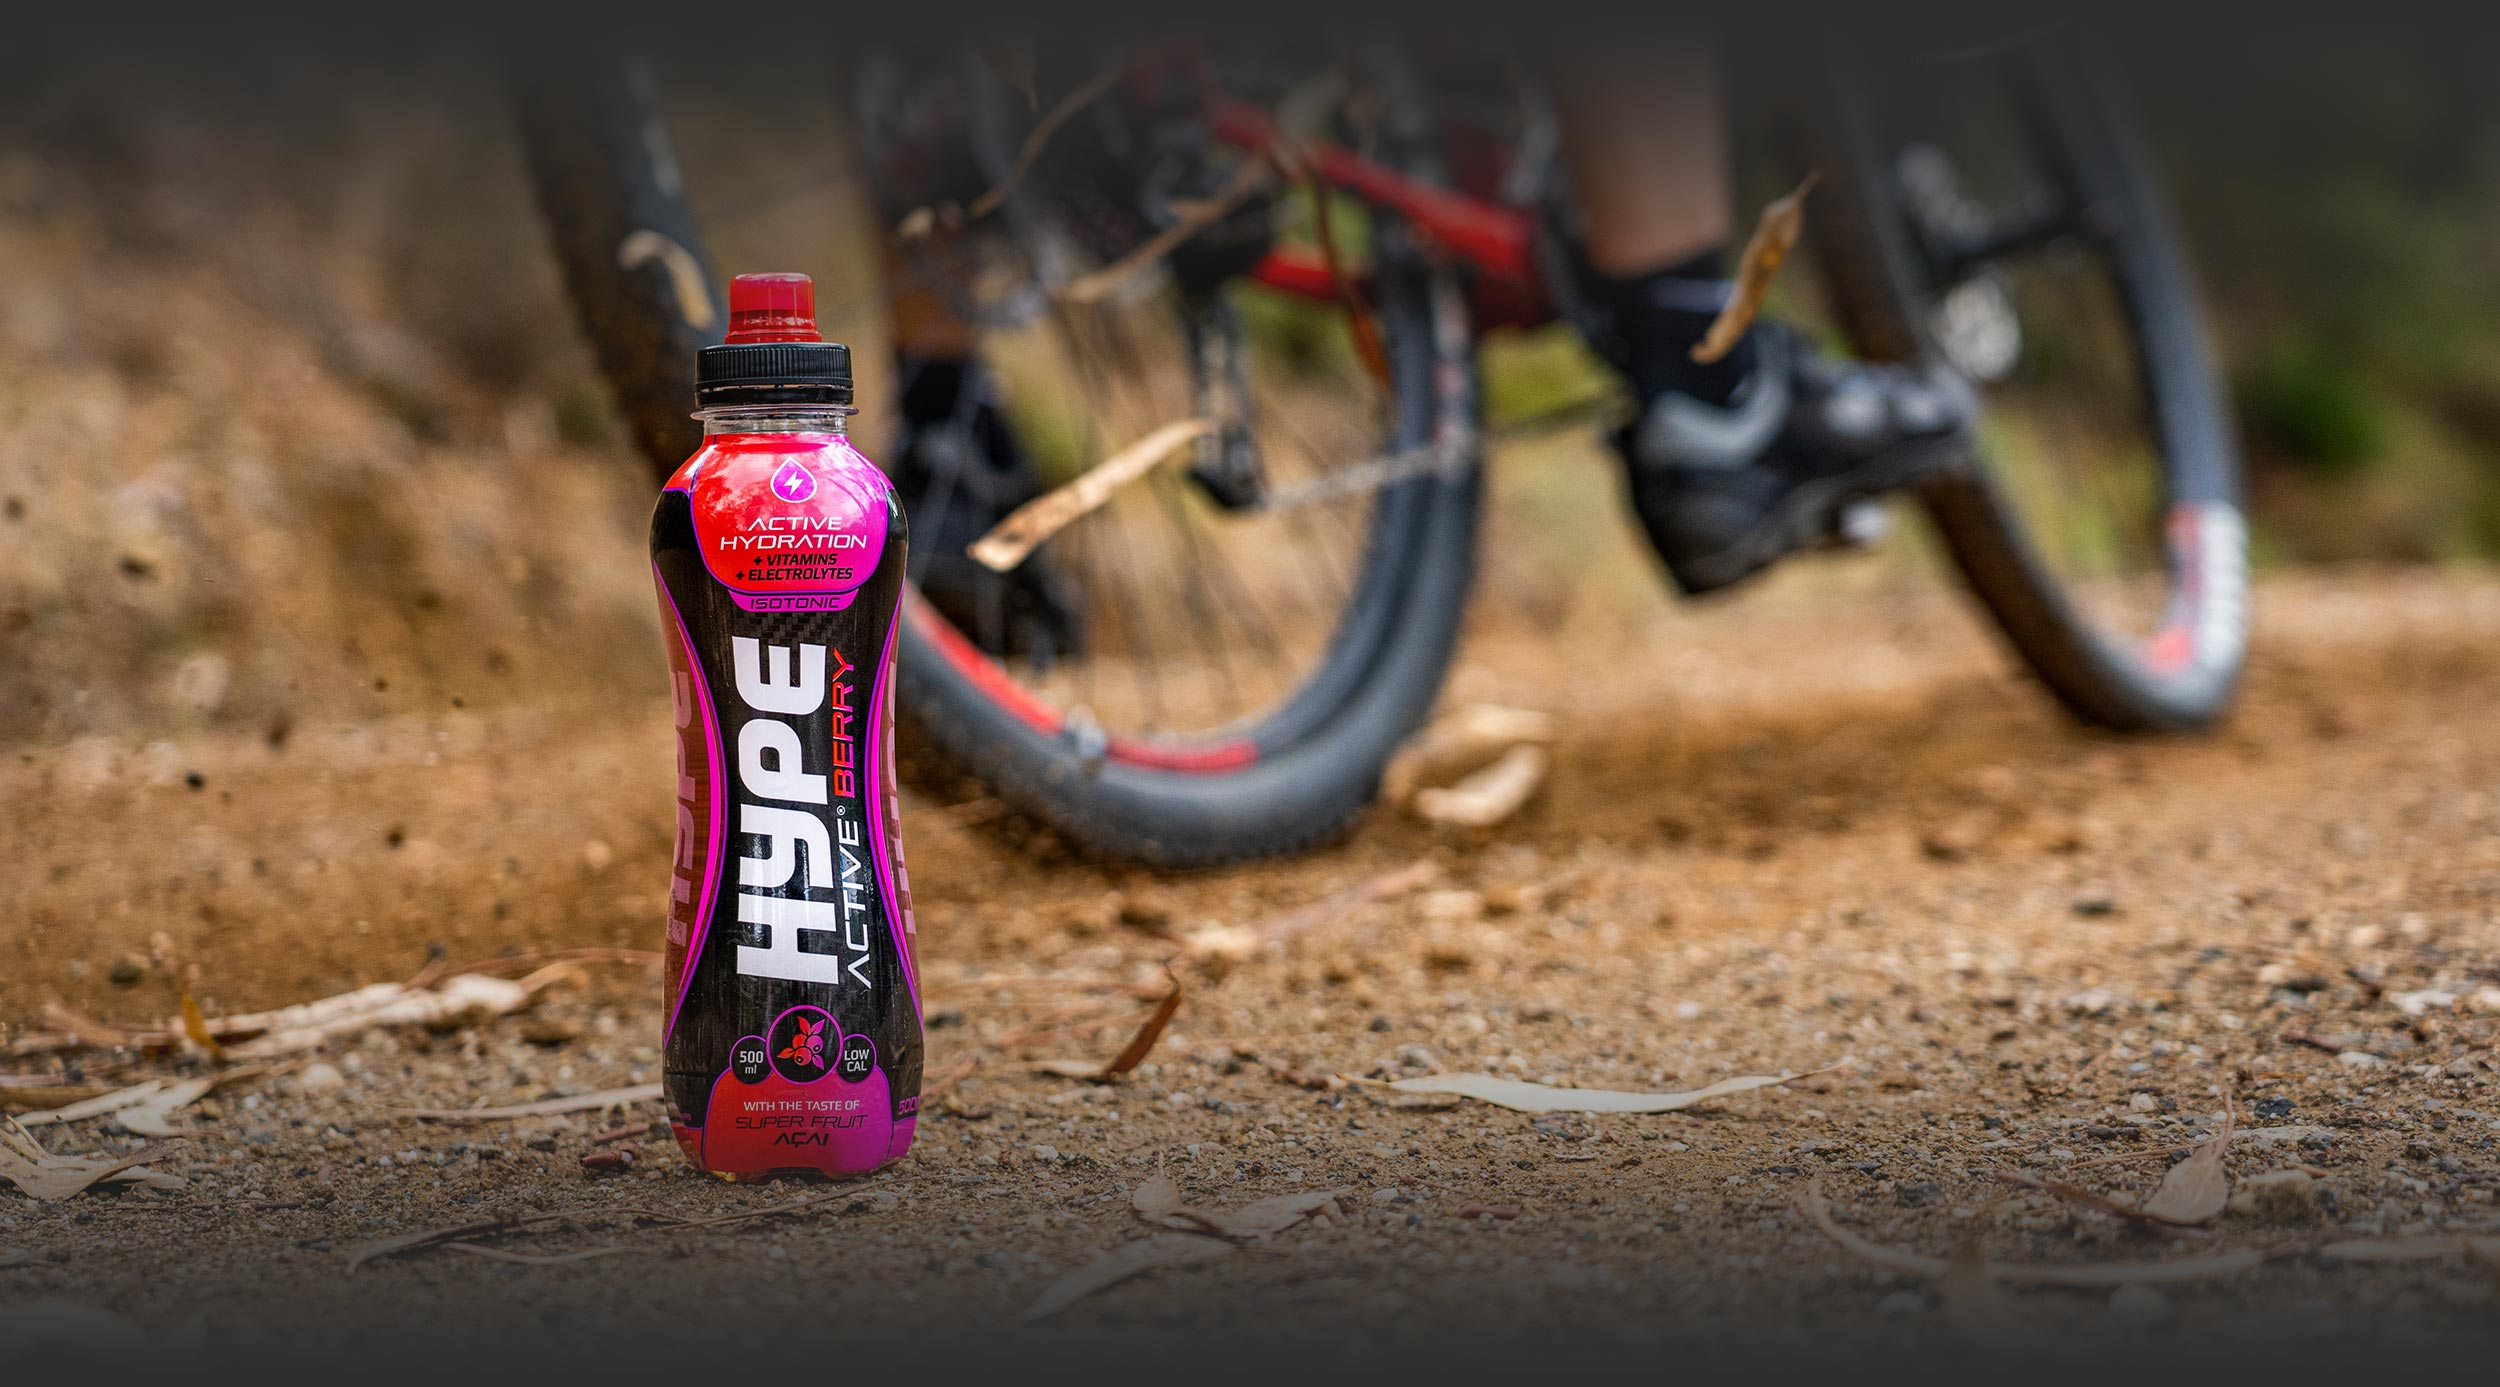 Hype Active Berry